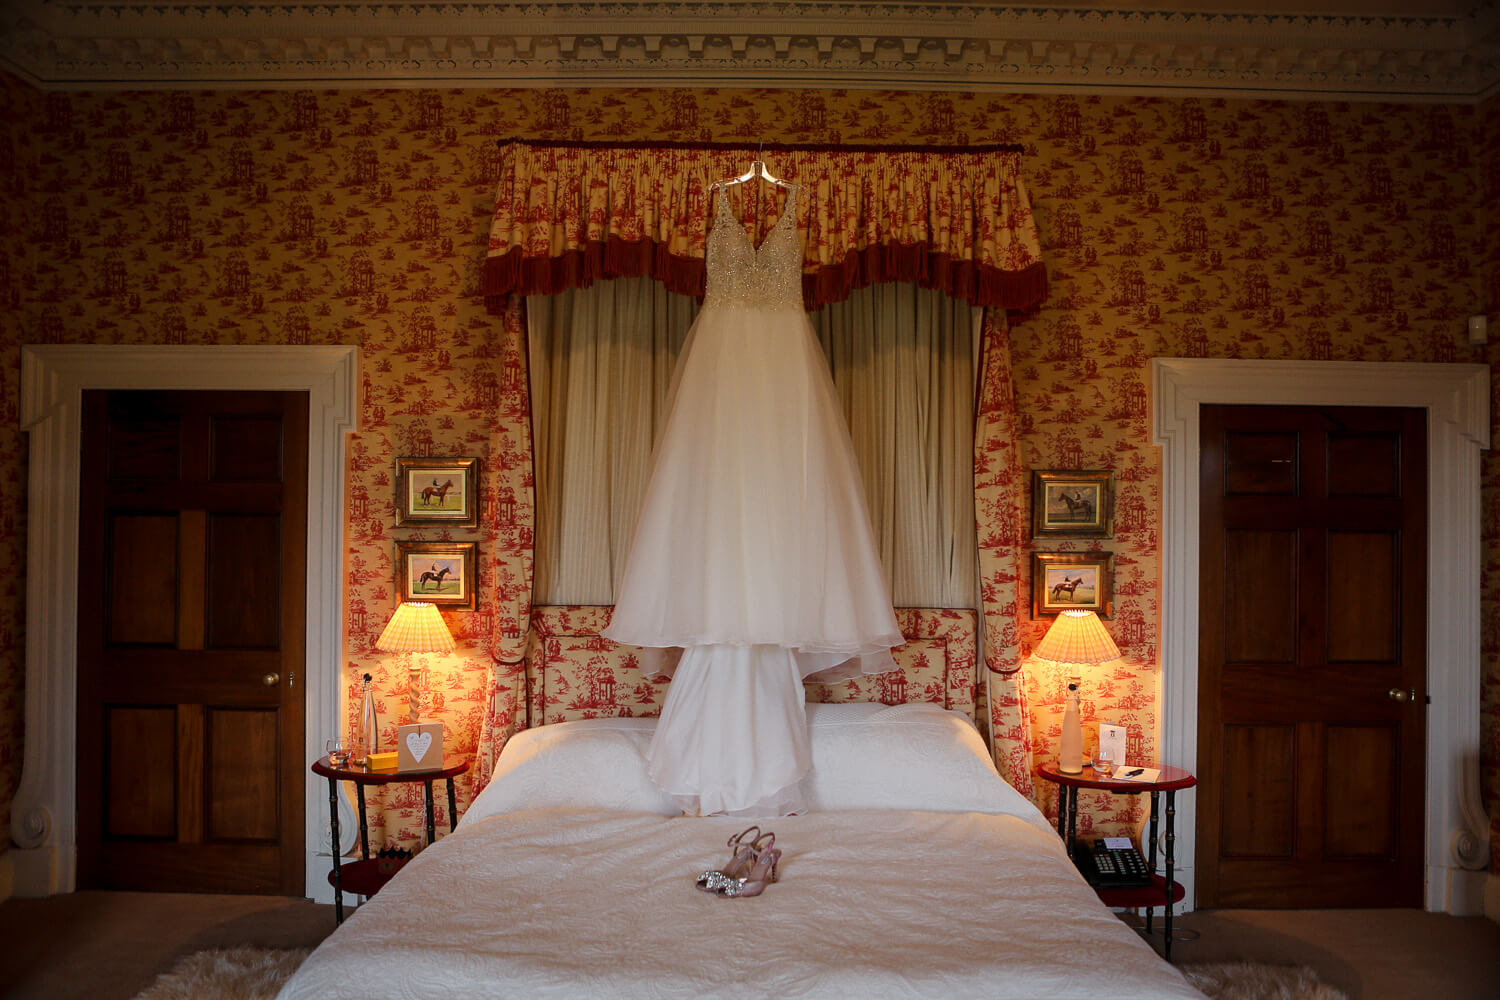 Essense of Australia wedding dress hanging up Knowsley hall